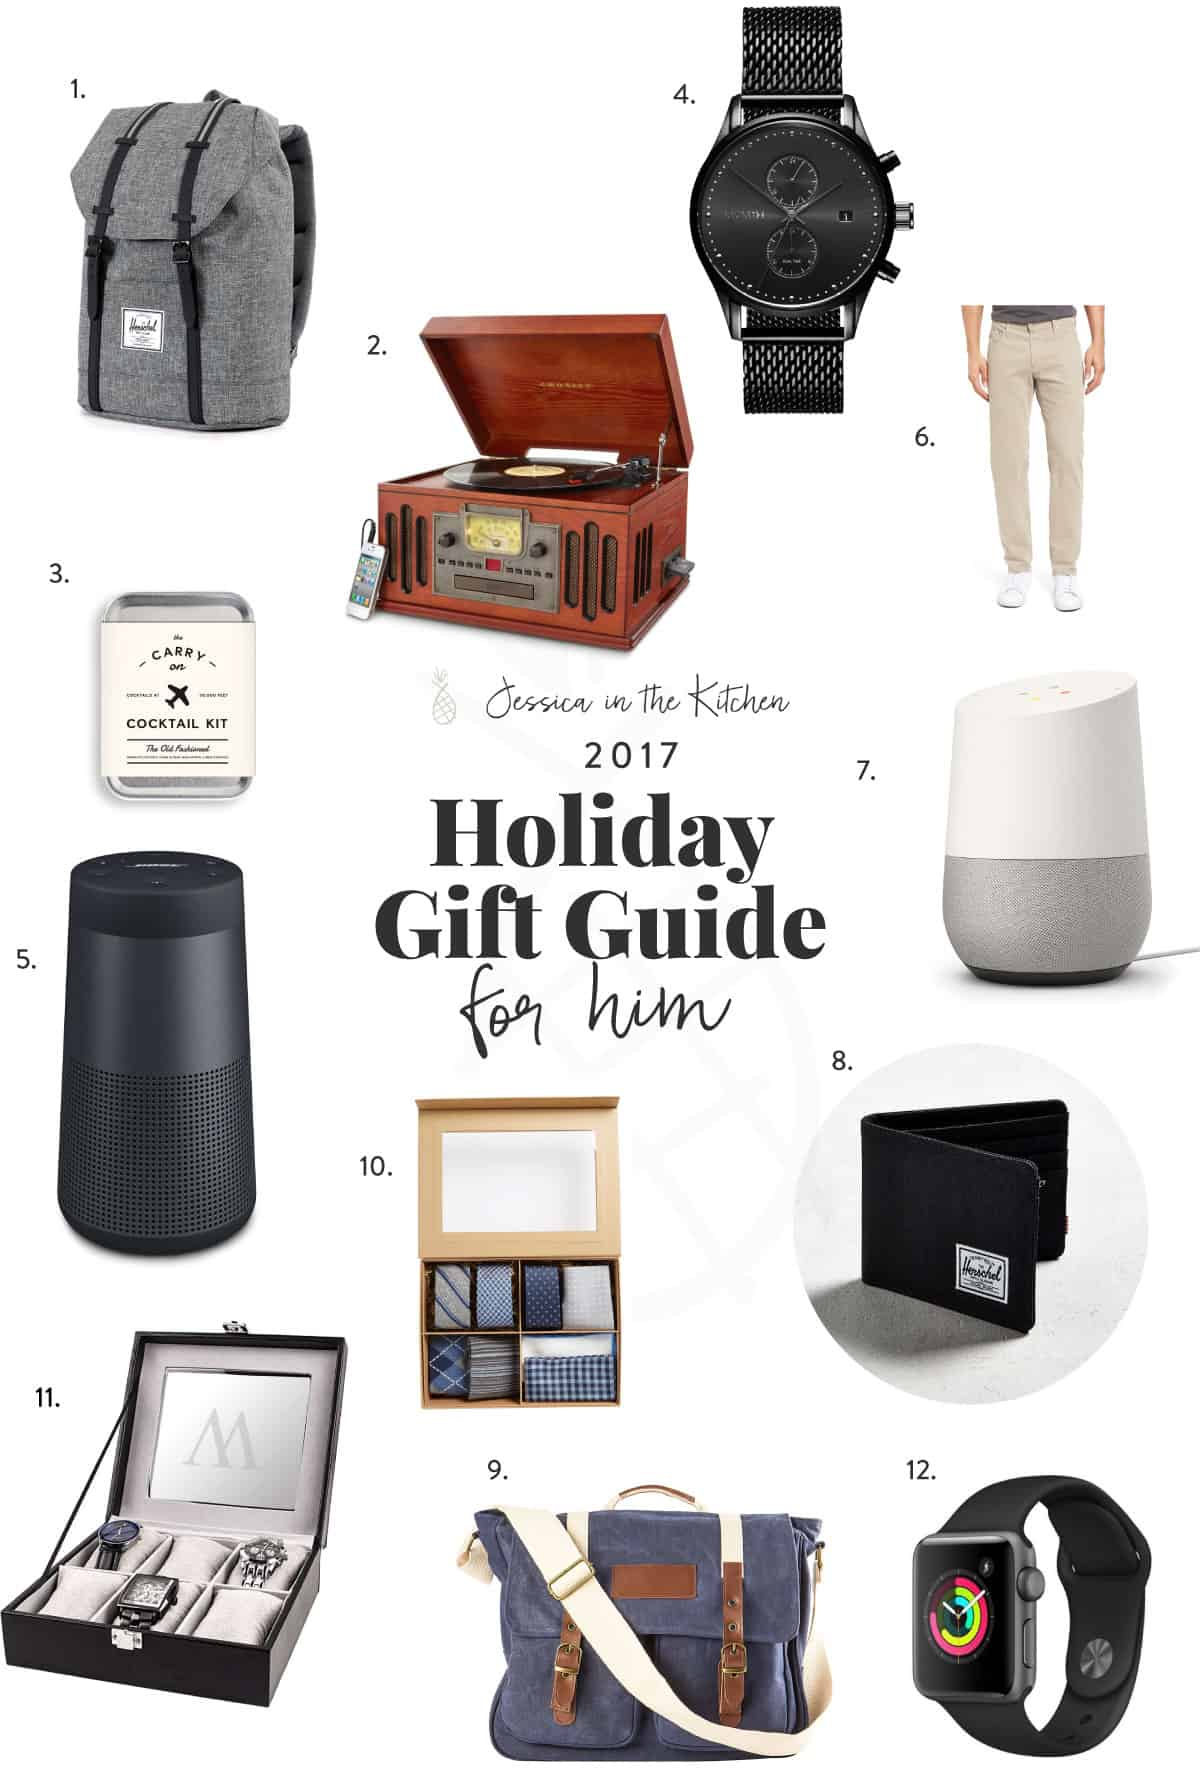 Various gifts for men on a white background.